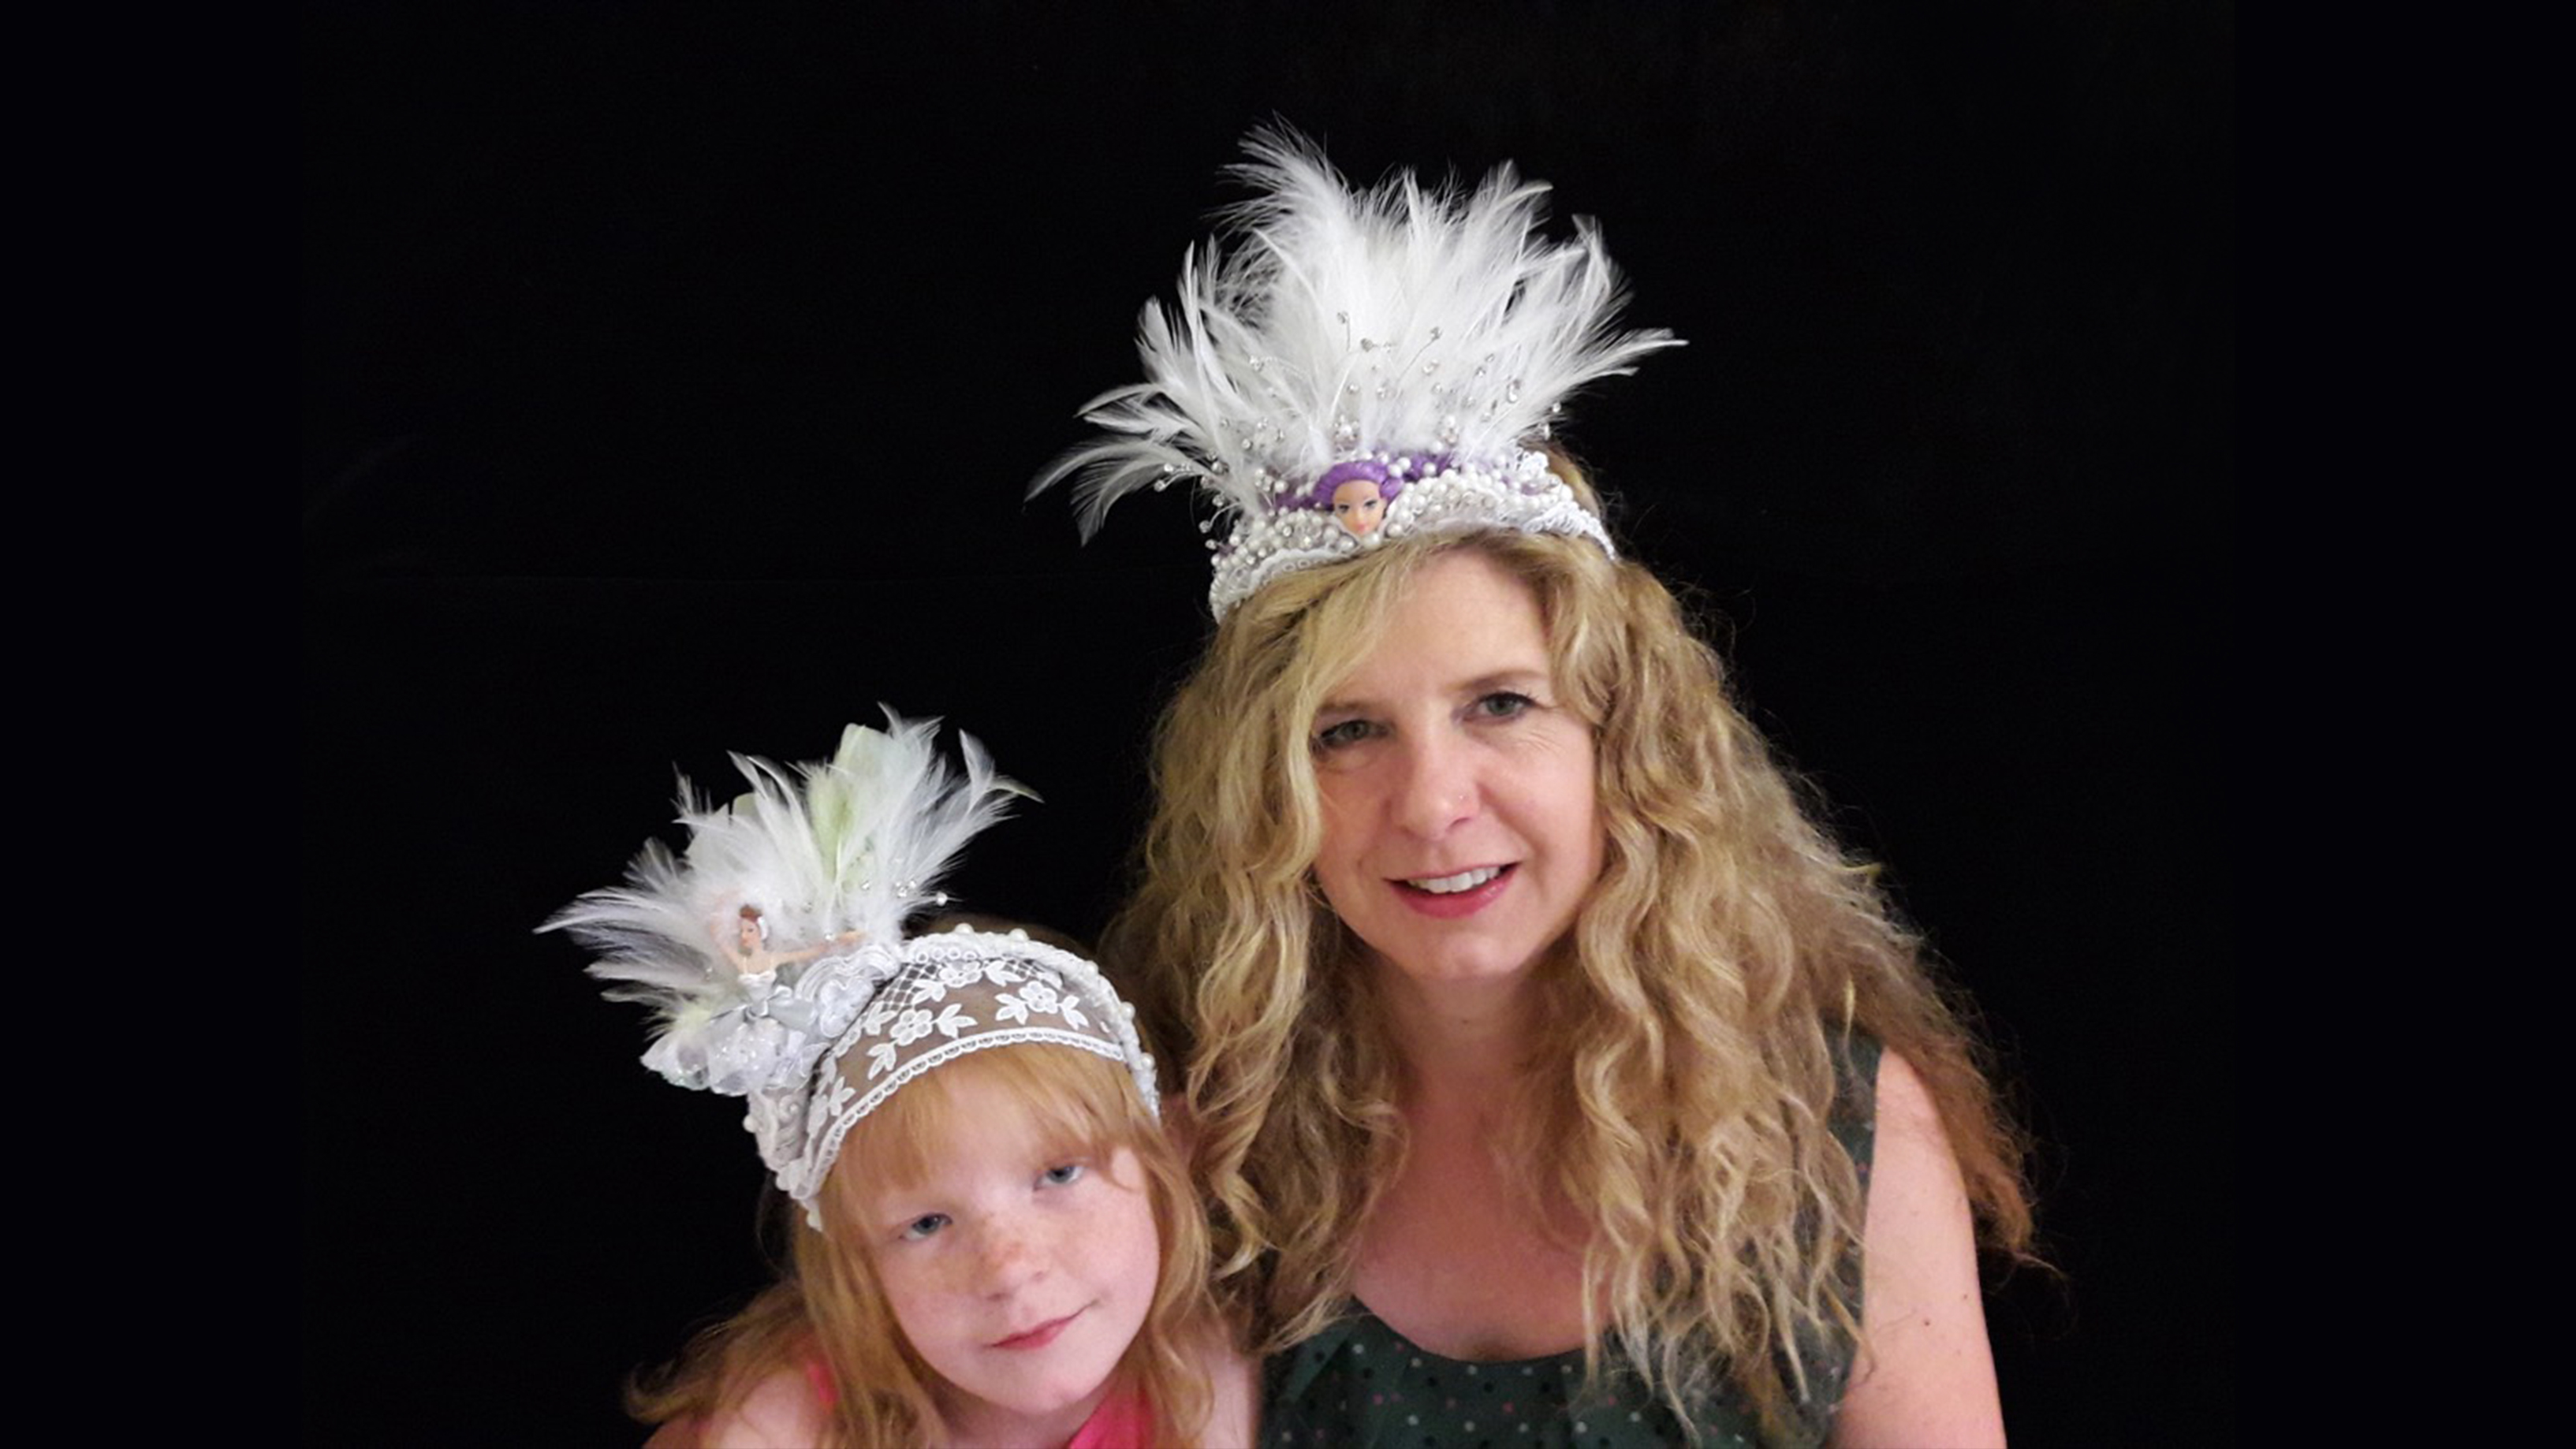 feathered tiara hair accessory